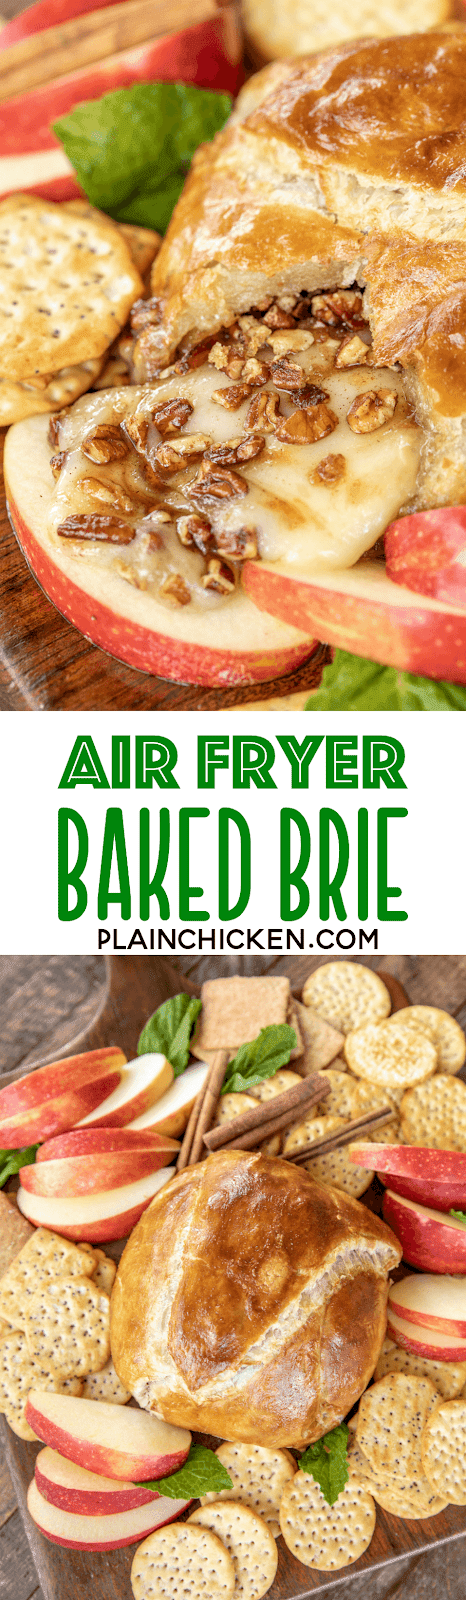 Air Fryer Baked Brie in Puff Pastry loaded with brown